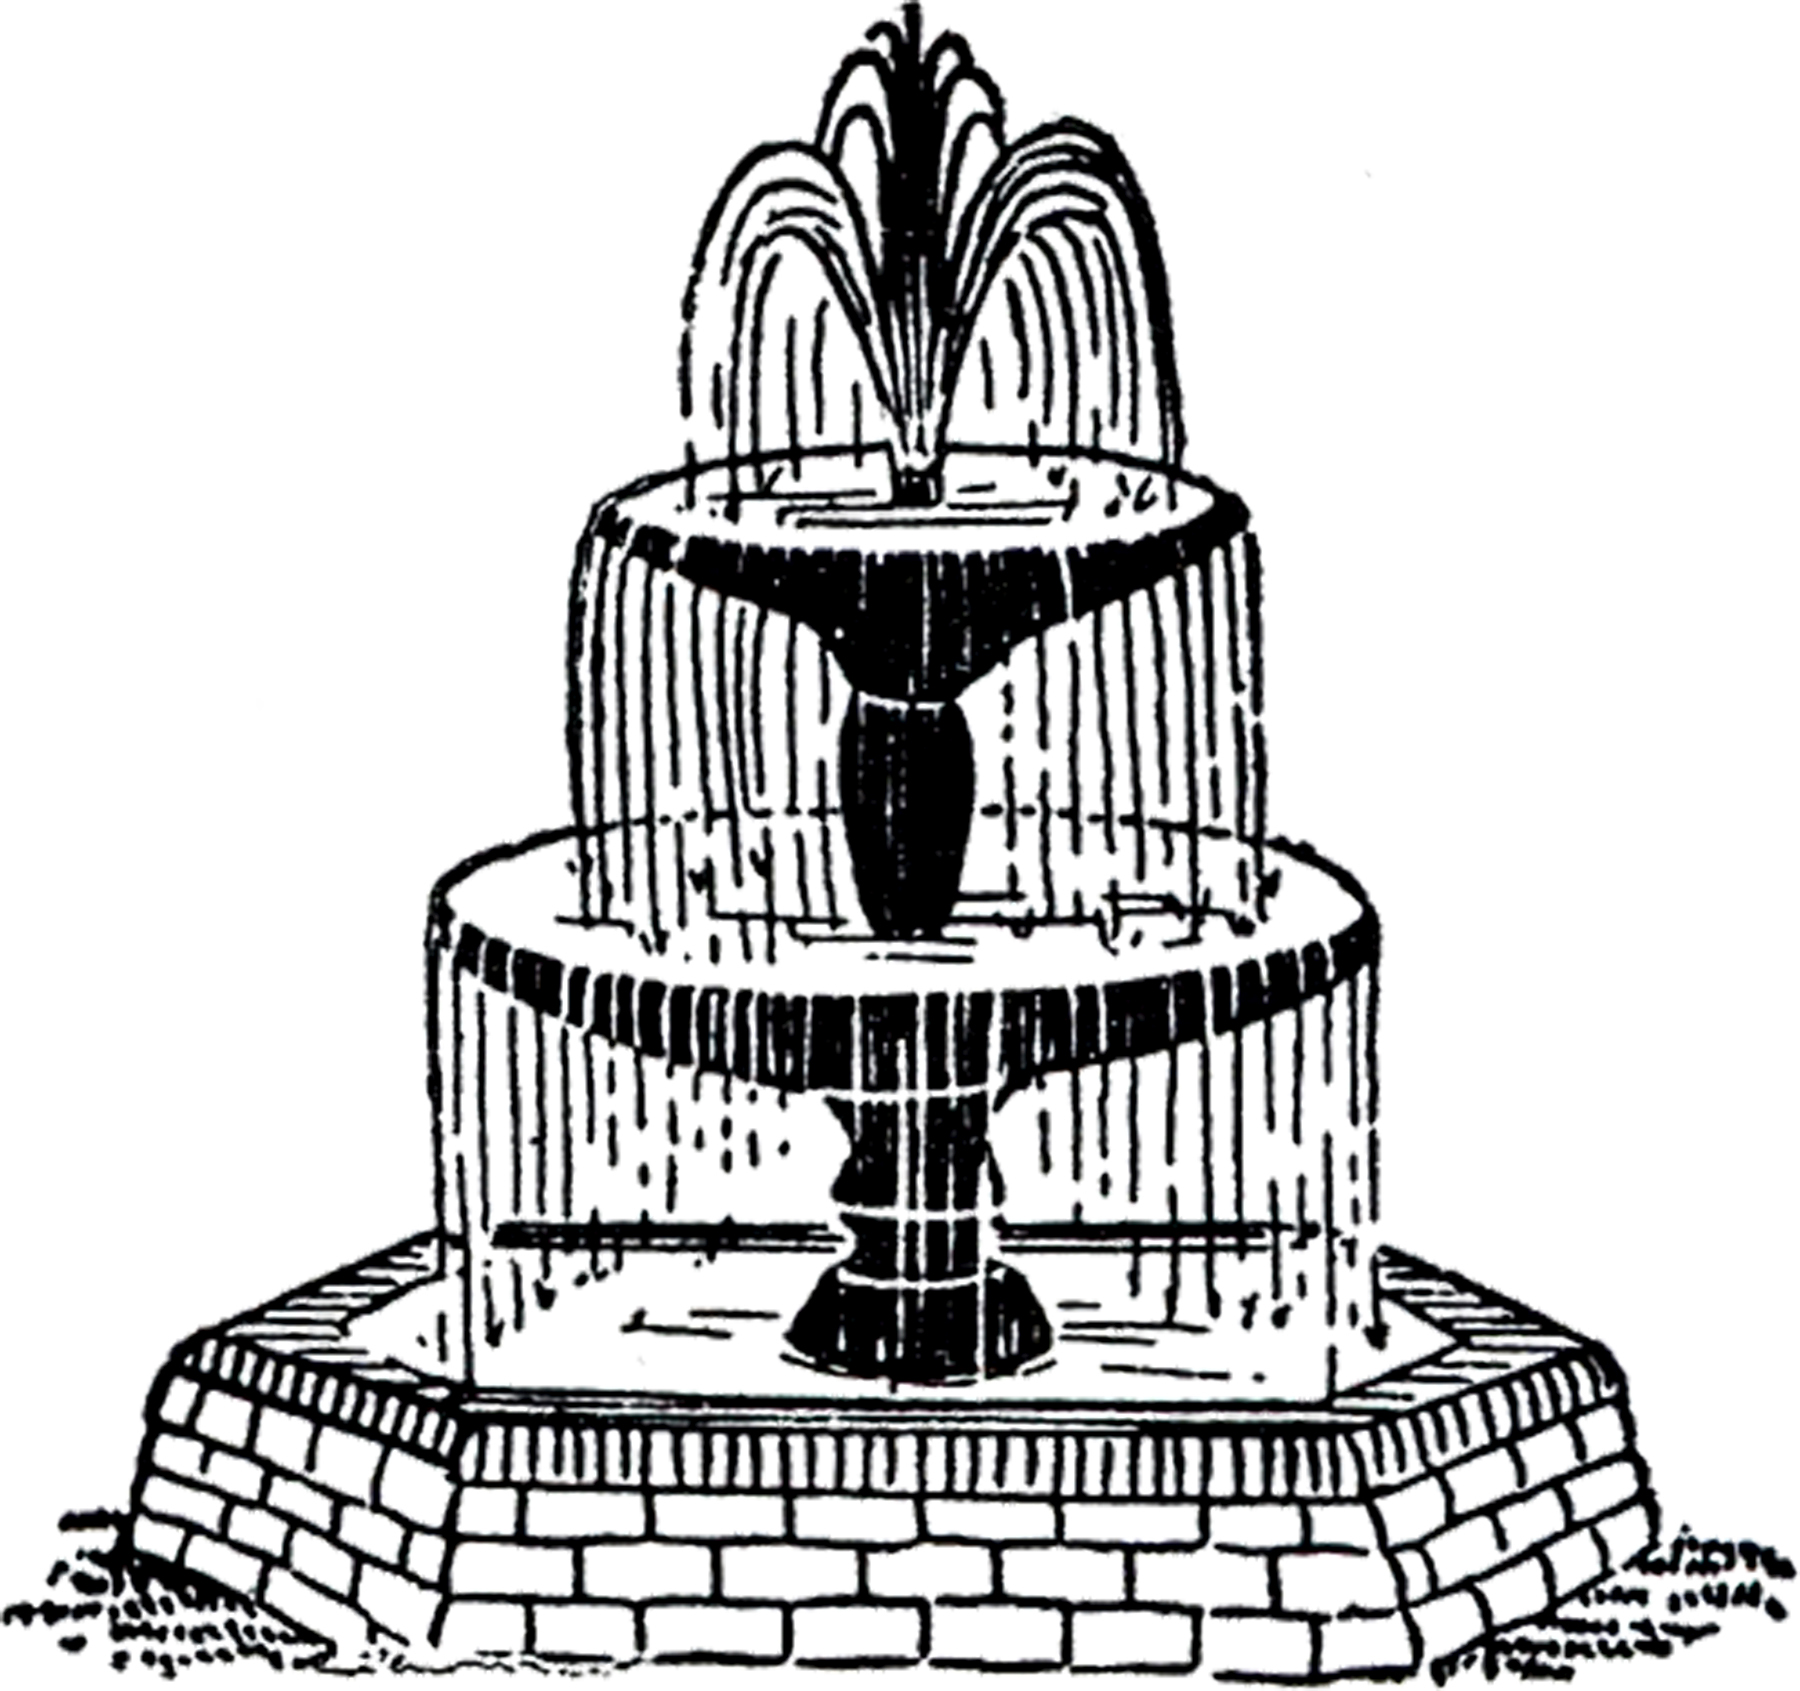 Free Vintage Fountain Clip Art! - The Graphics Fairy